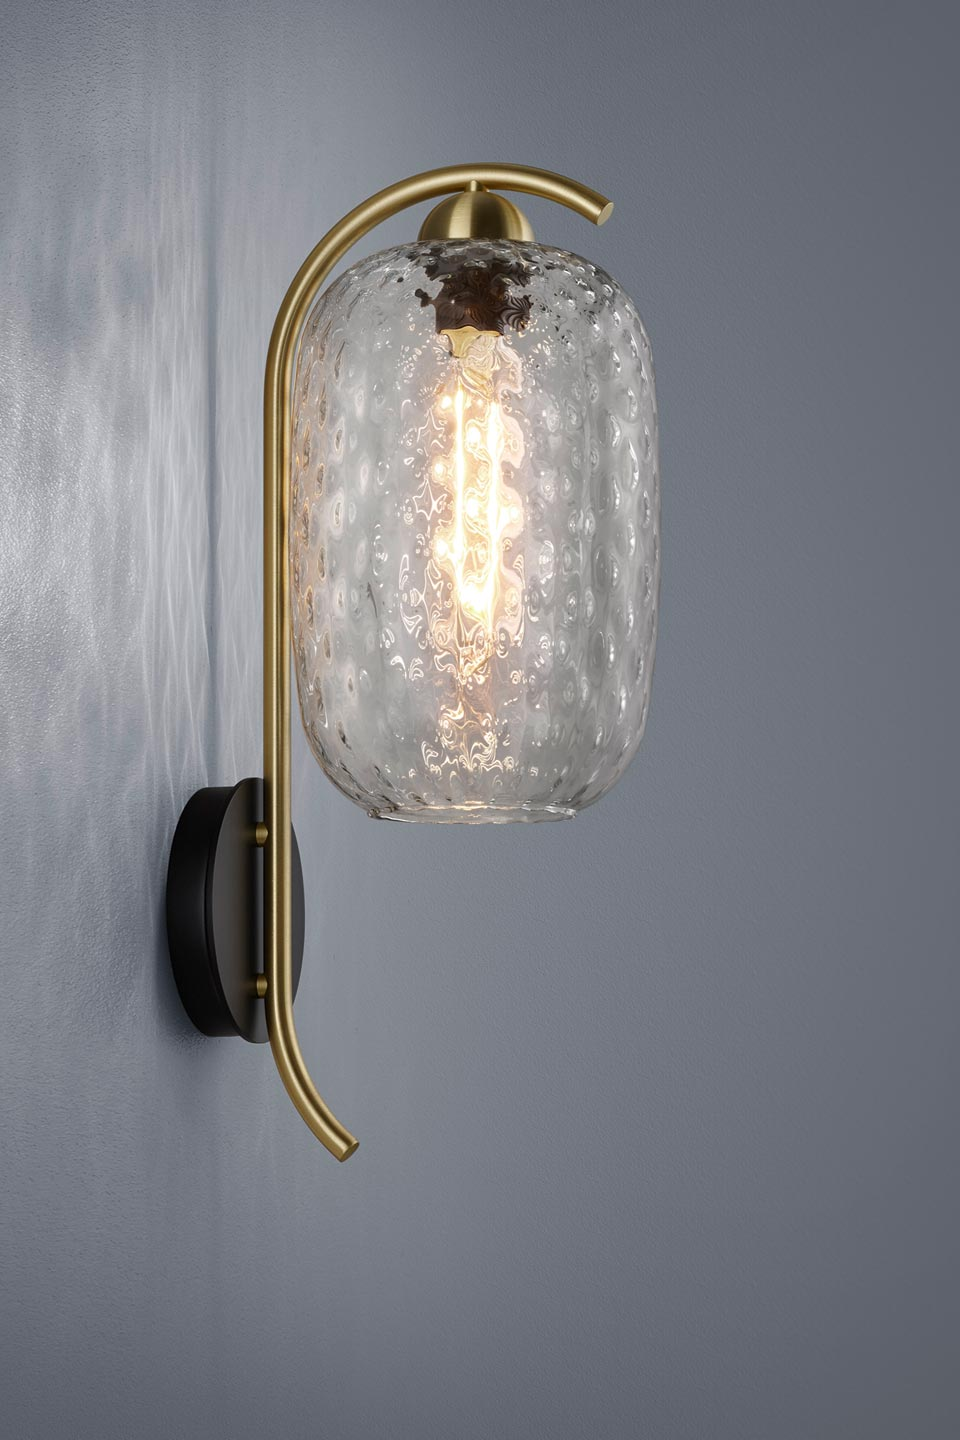 Golden and design wall lamp with carved glass. Baulmann Leuchten.